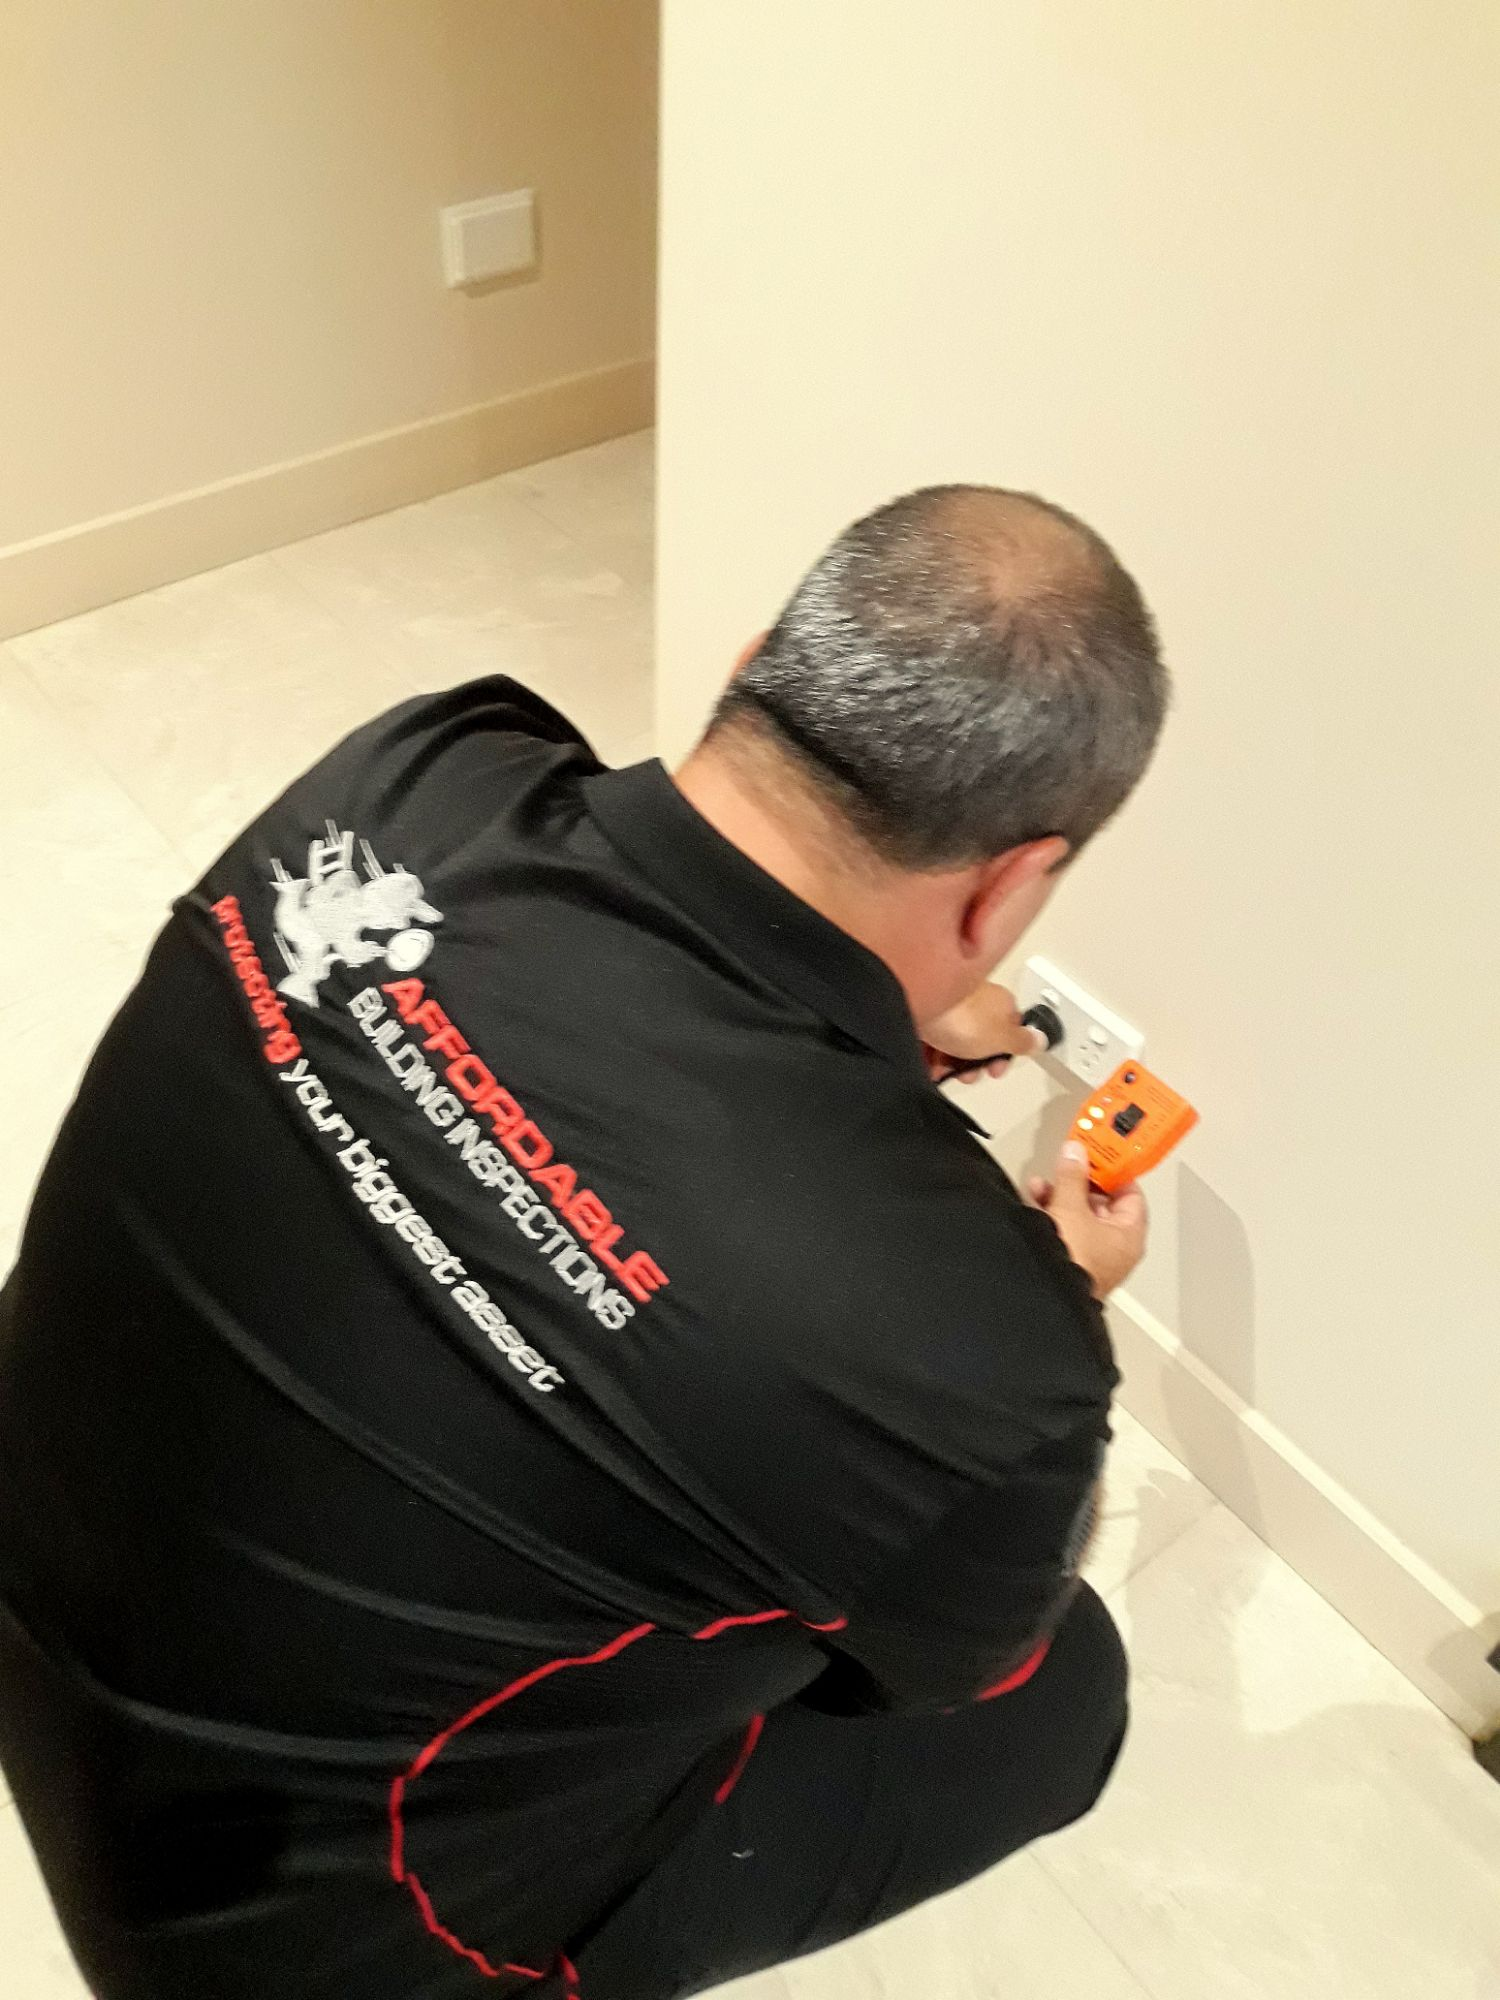 Building Inspections in Mandurah and Perth